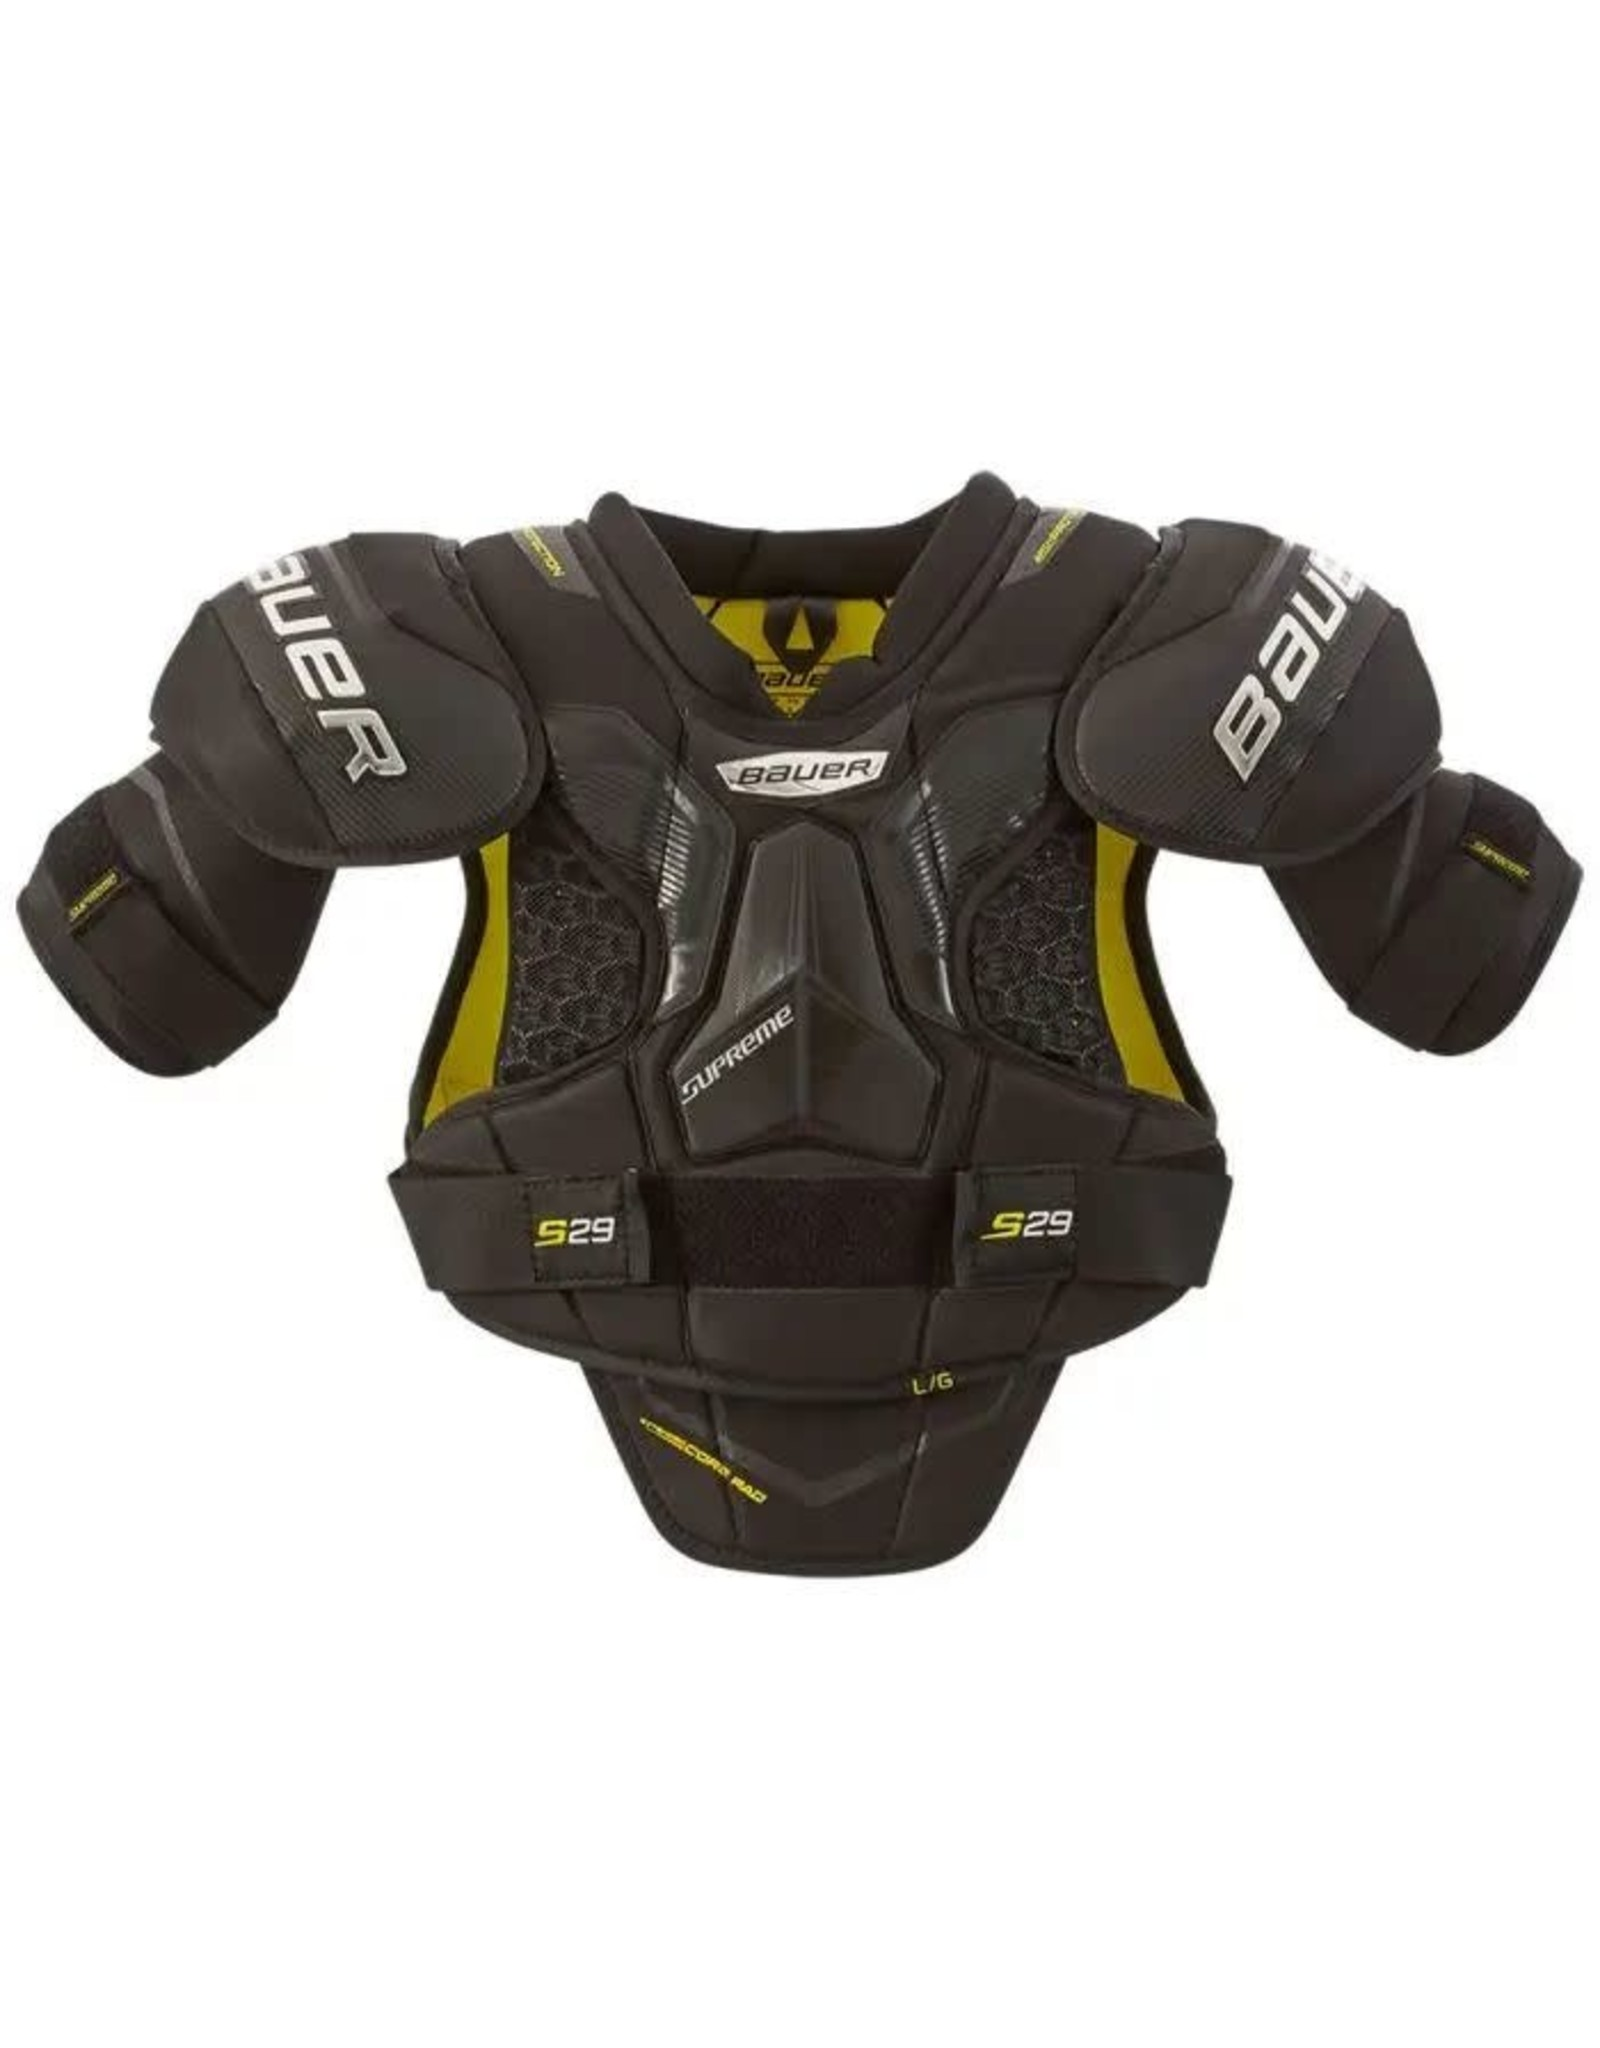 BAUER Supreme S29, Senior, Shoulder Pads